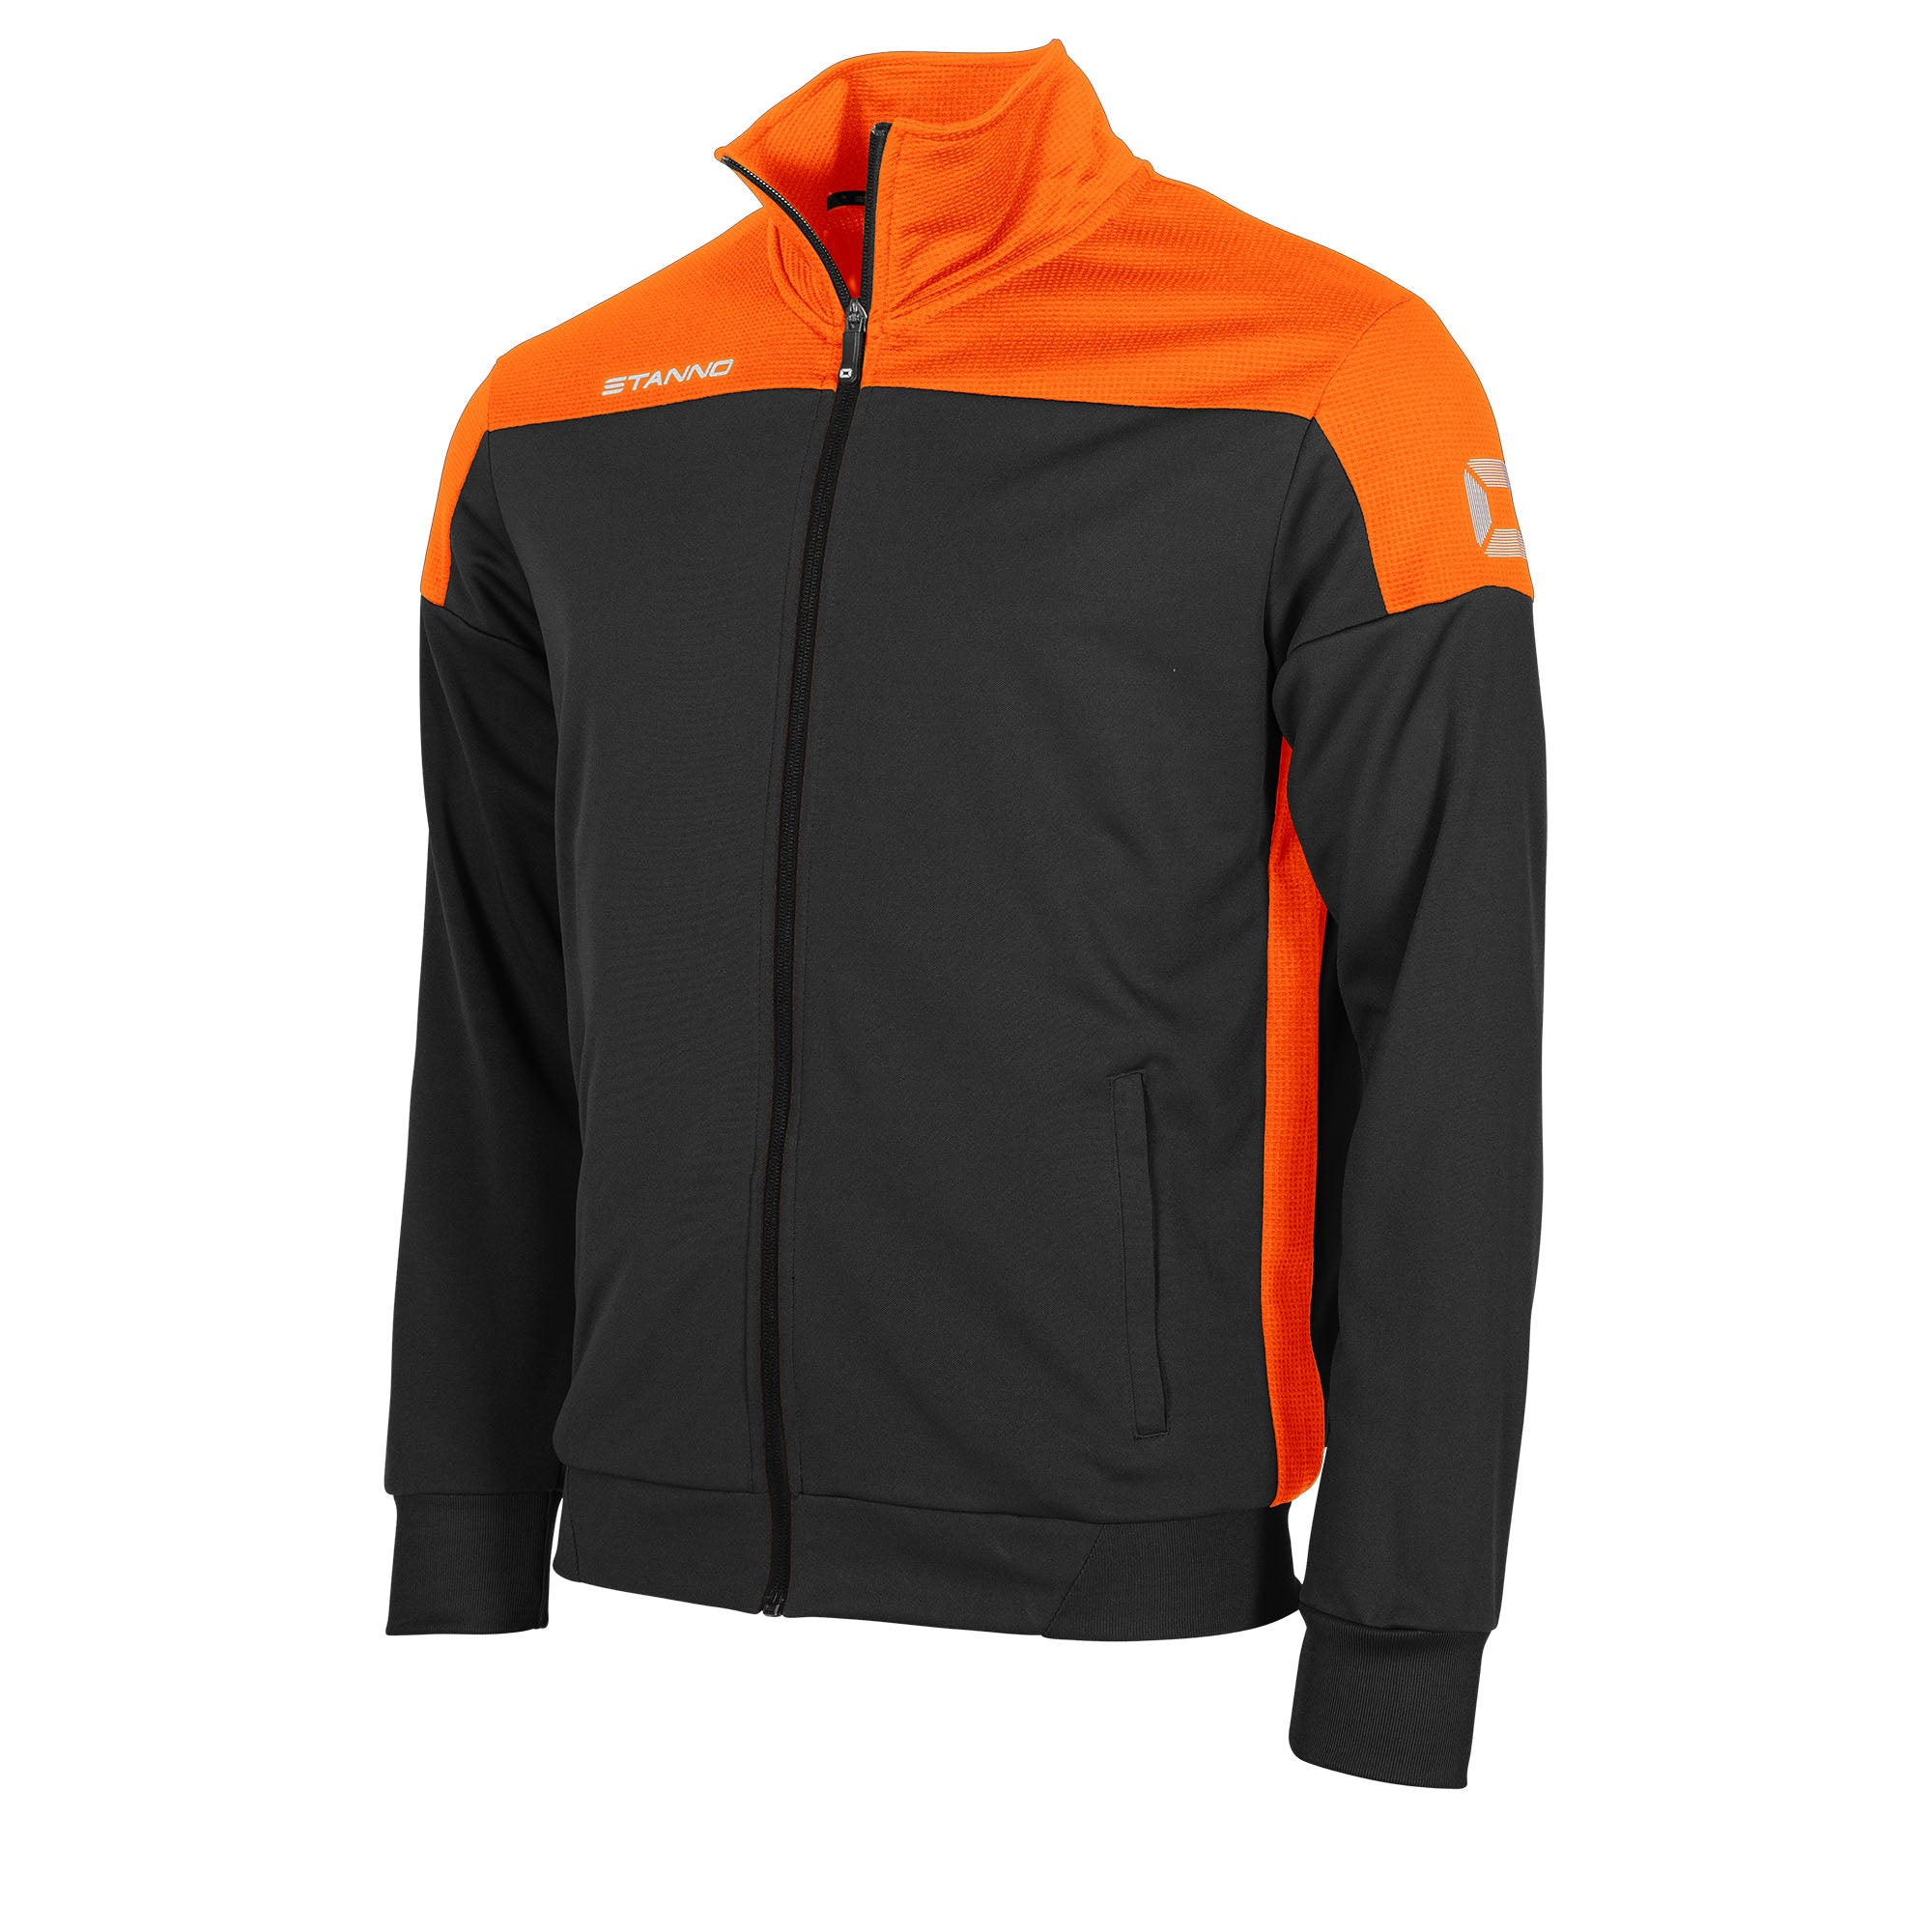 Stanno Pride TTS Jacket full zip in black with orange contrast shoulders and side panel